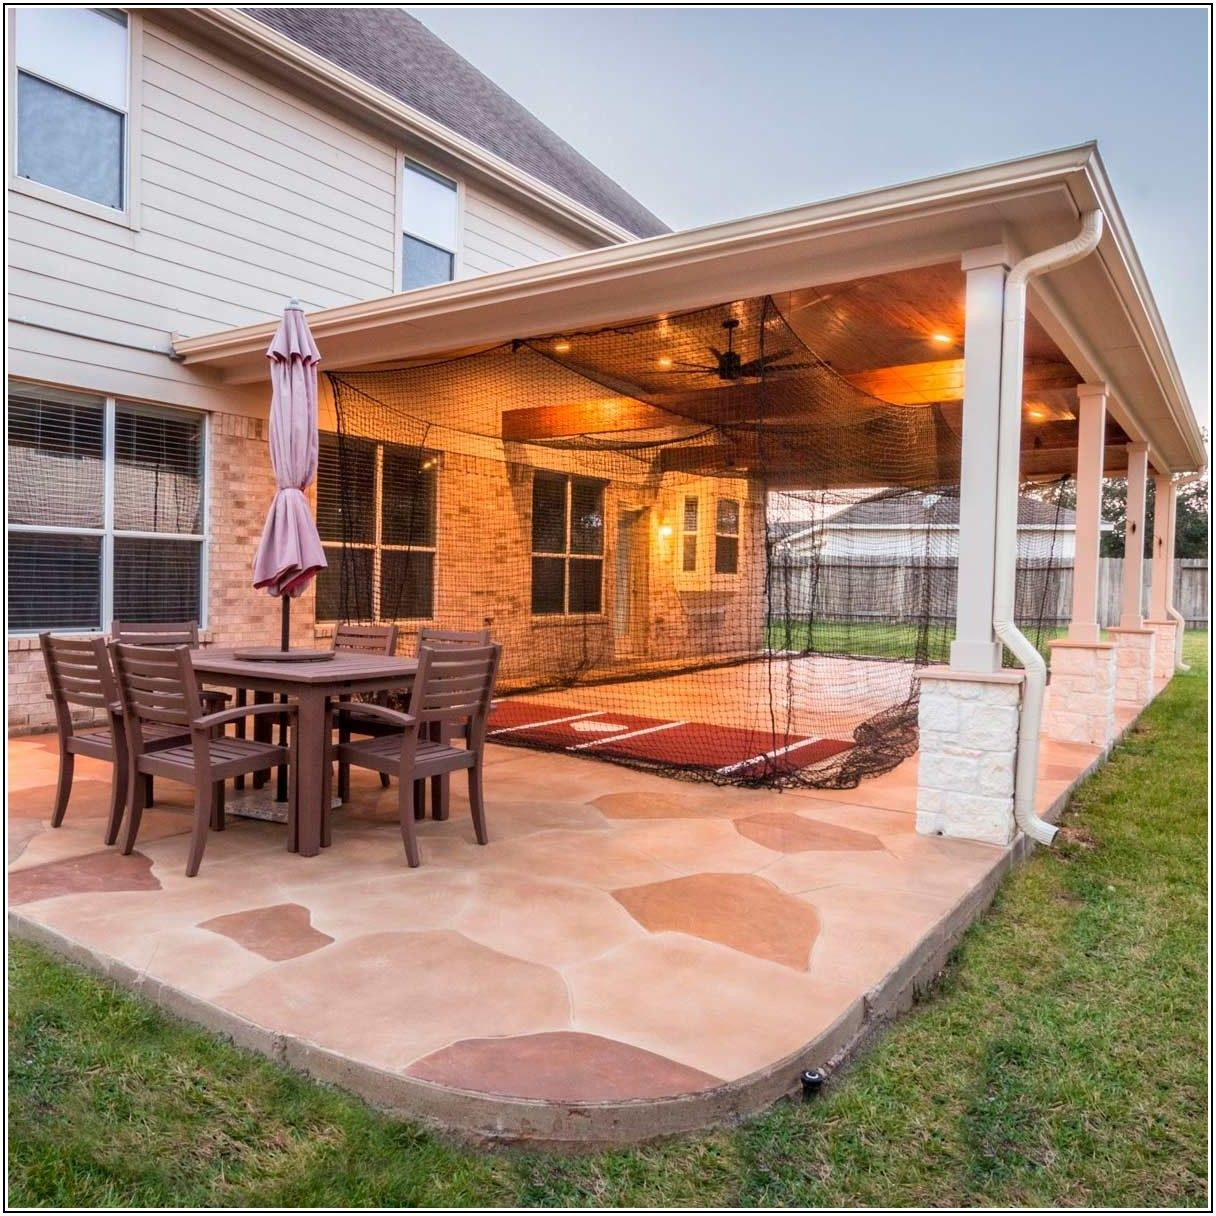 Backyard Stamped Concrete Patio With Pergola